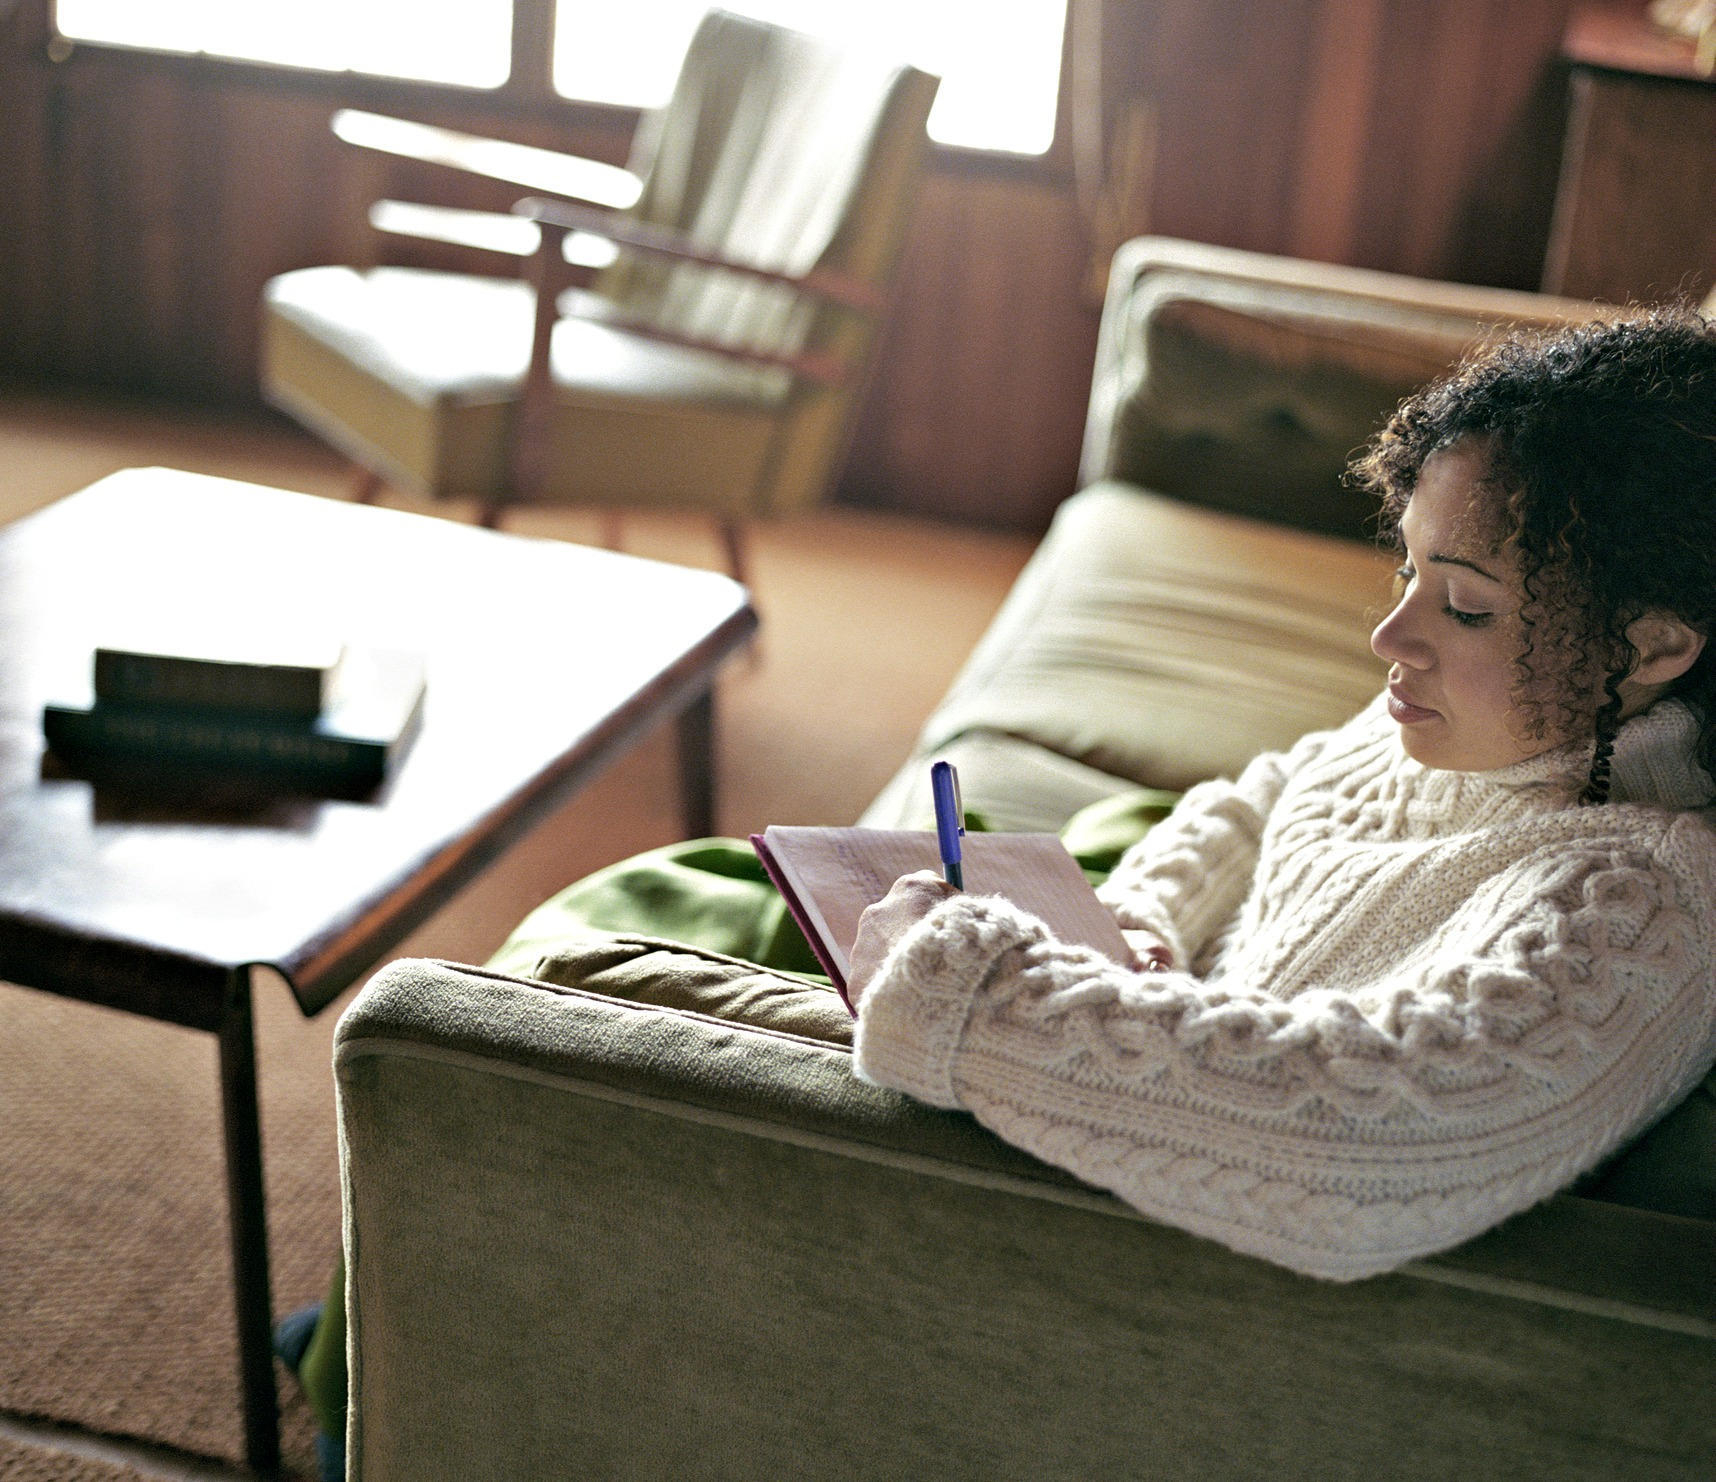 Woman sitting on couch writing self-reflections about her psychotherapy and counseling session.